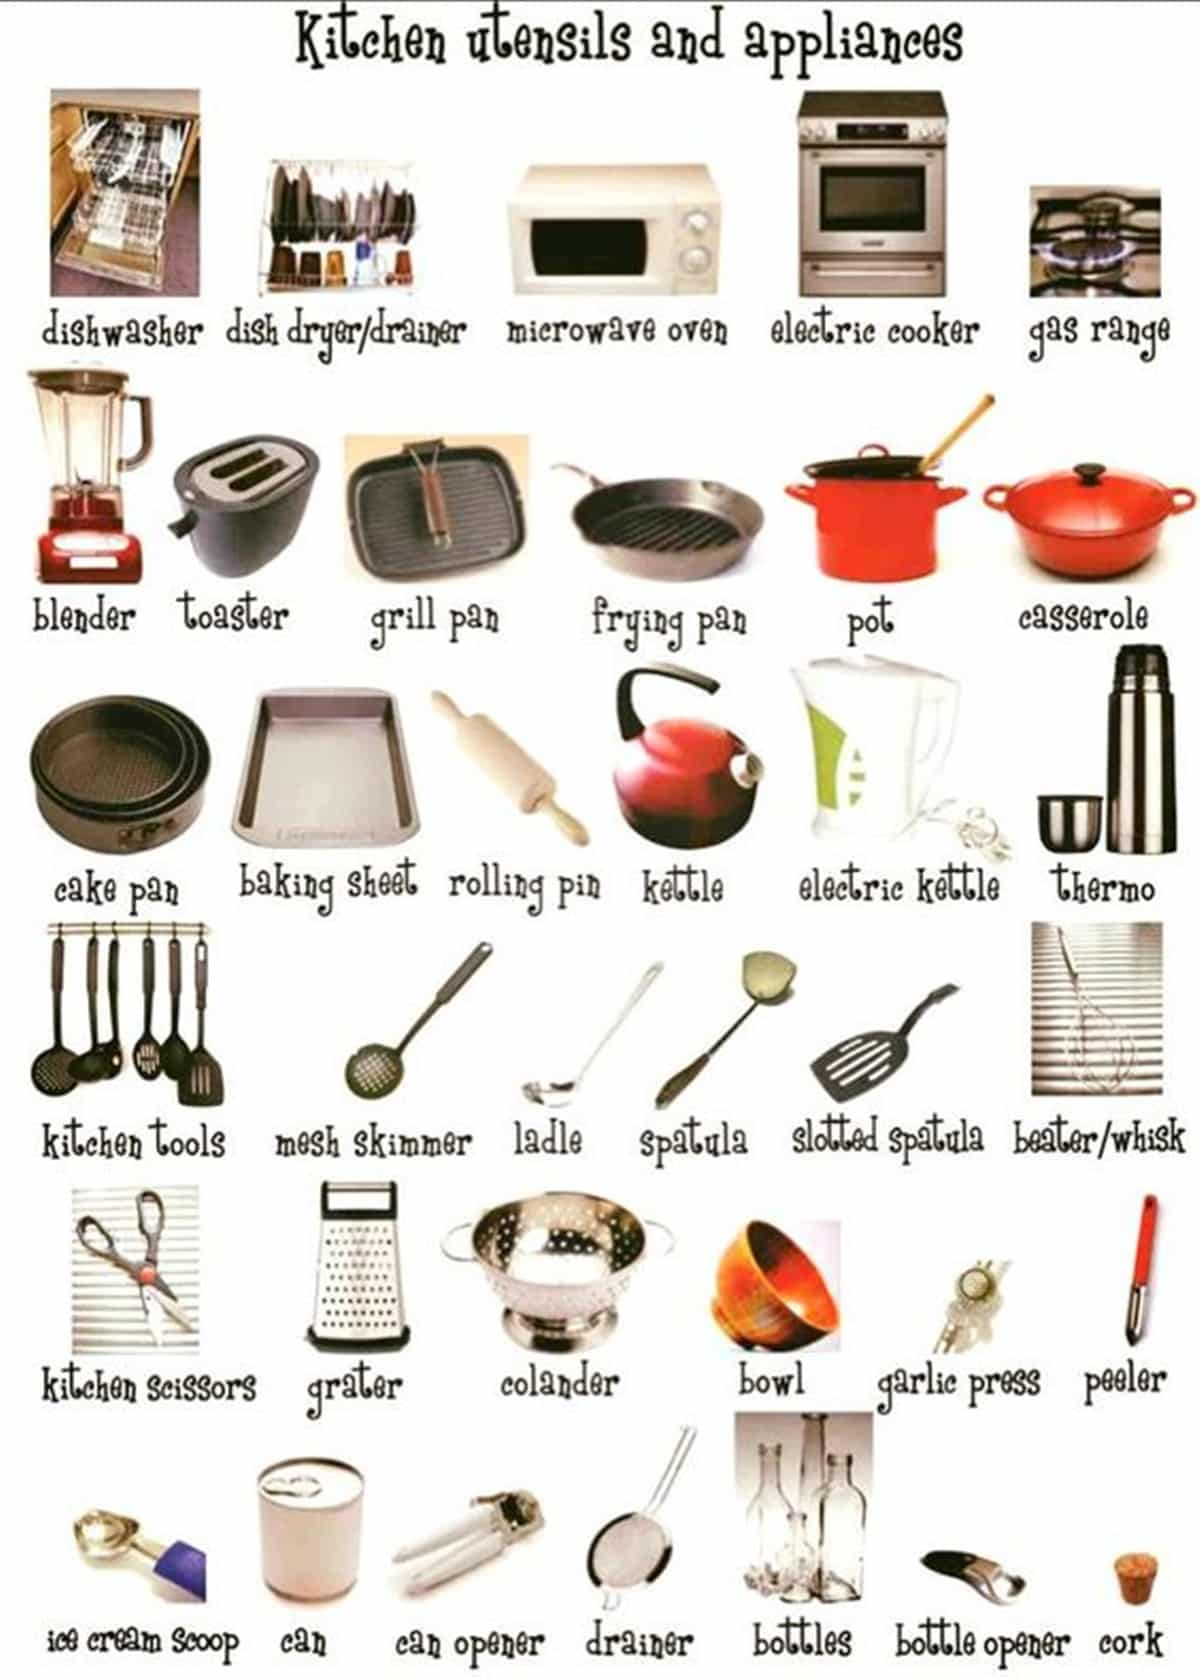 """In the Kitchen"" Vocabulary: 200+ Objects Illustrated 17"